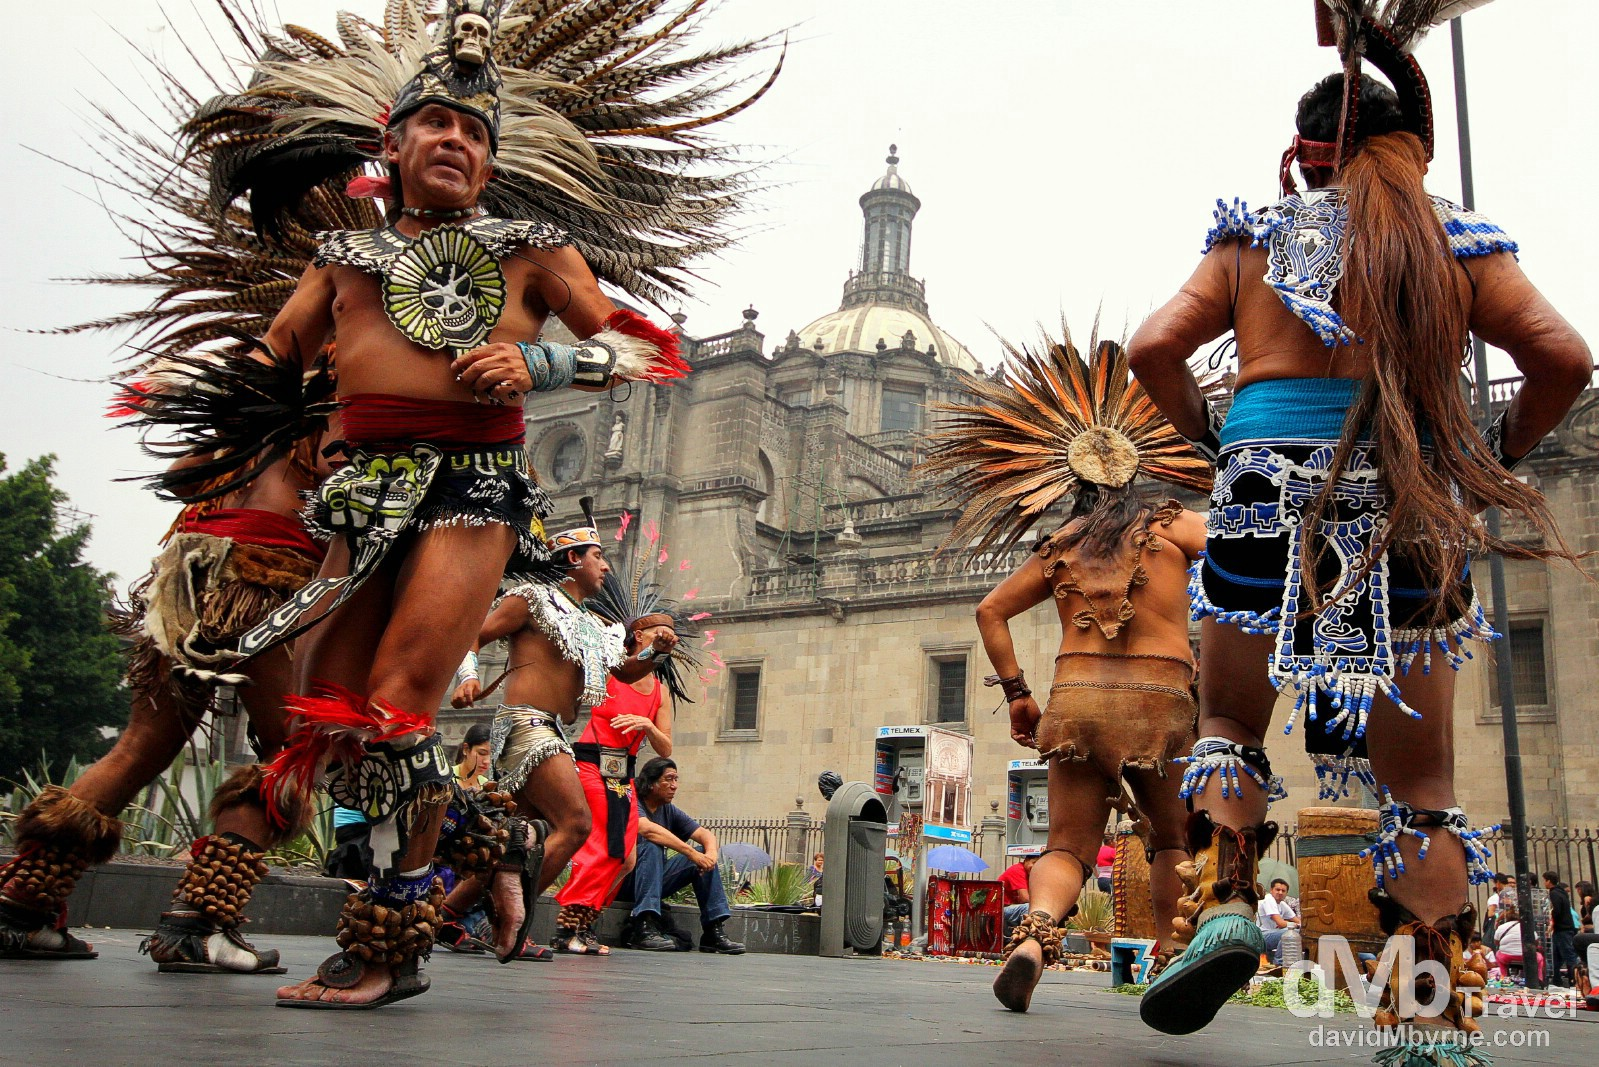 A for-tourists Aztec war dance in the Zocalo, the heart of Mexico City, formally called the Plaza de la Construction, with a section of the Catedral Metropolitana, Mexico City's most iconic structure, in the background. Mexico City. April 26th 2013.